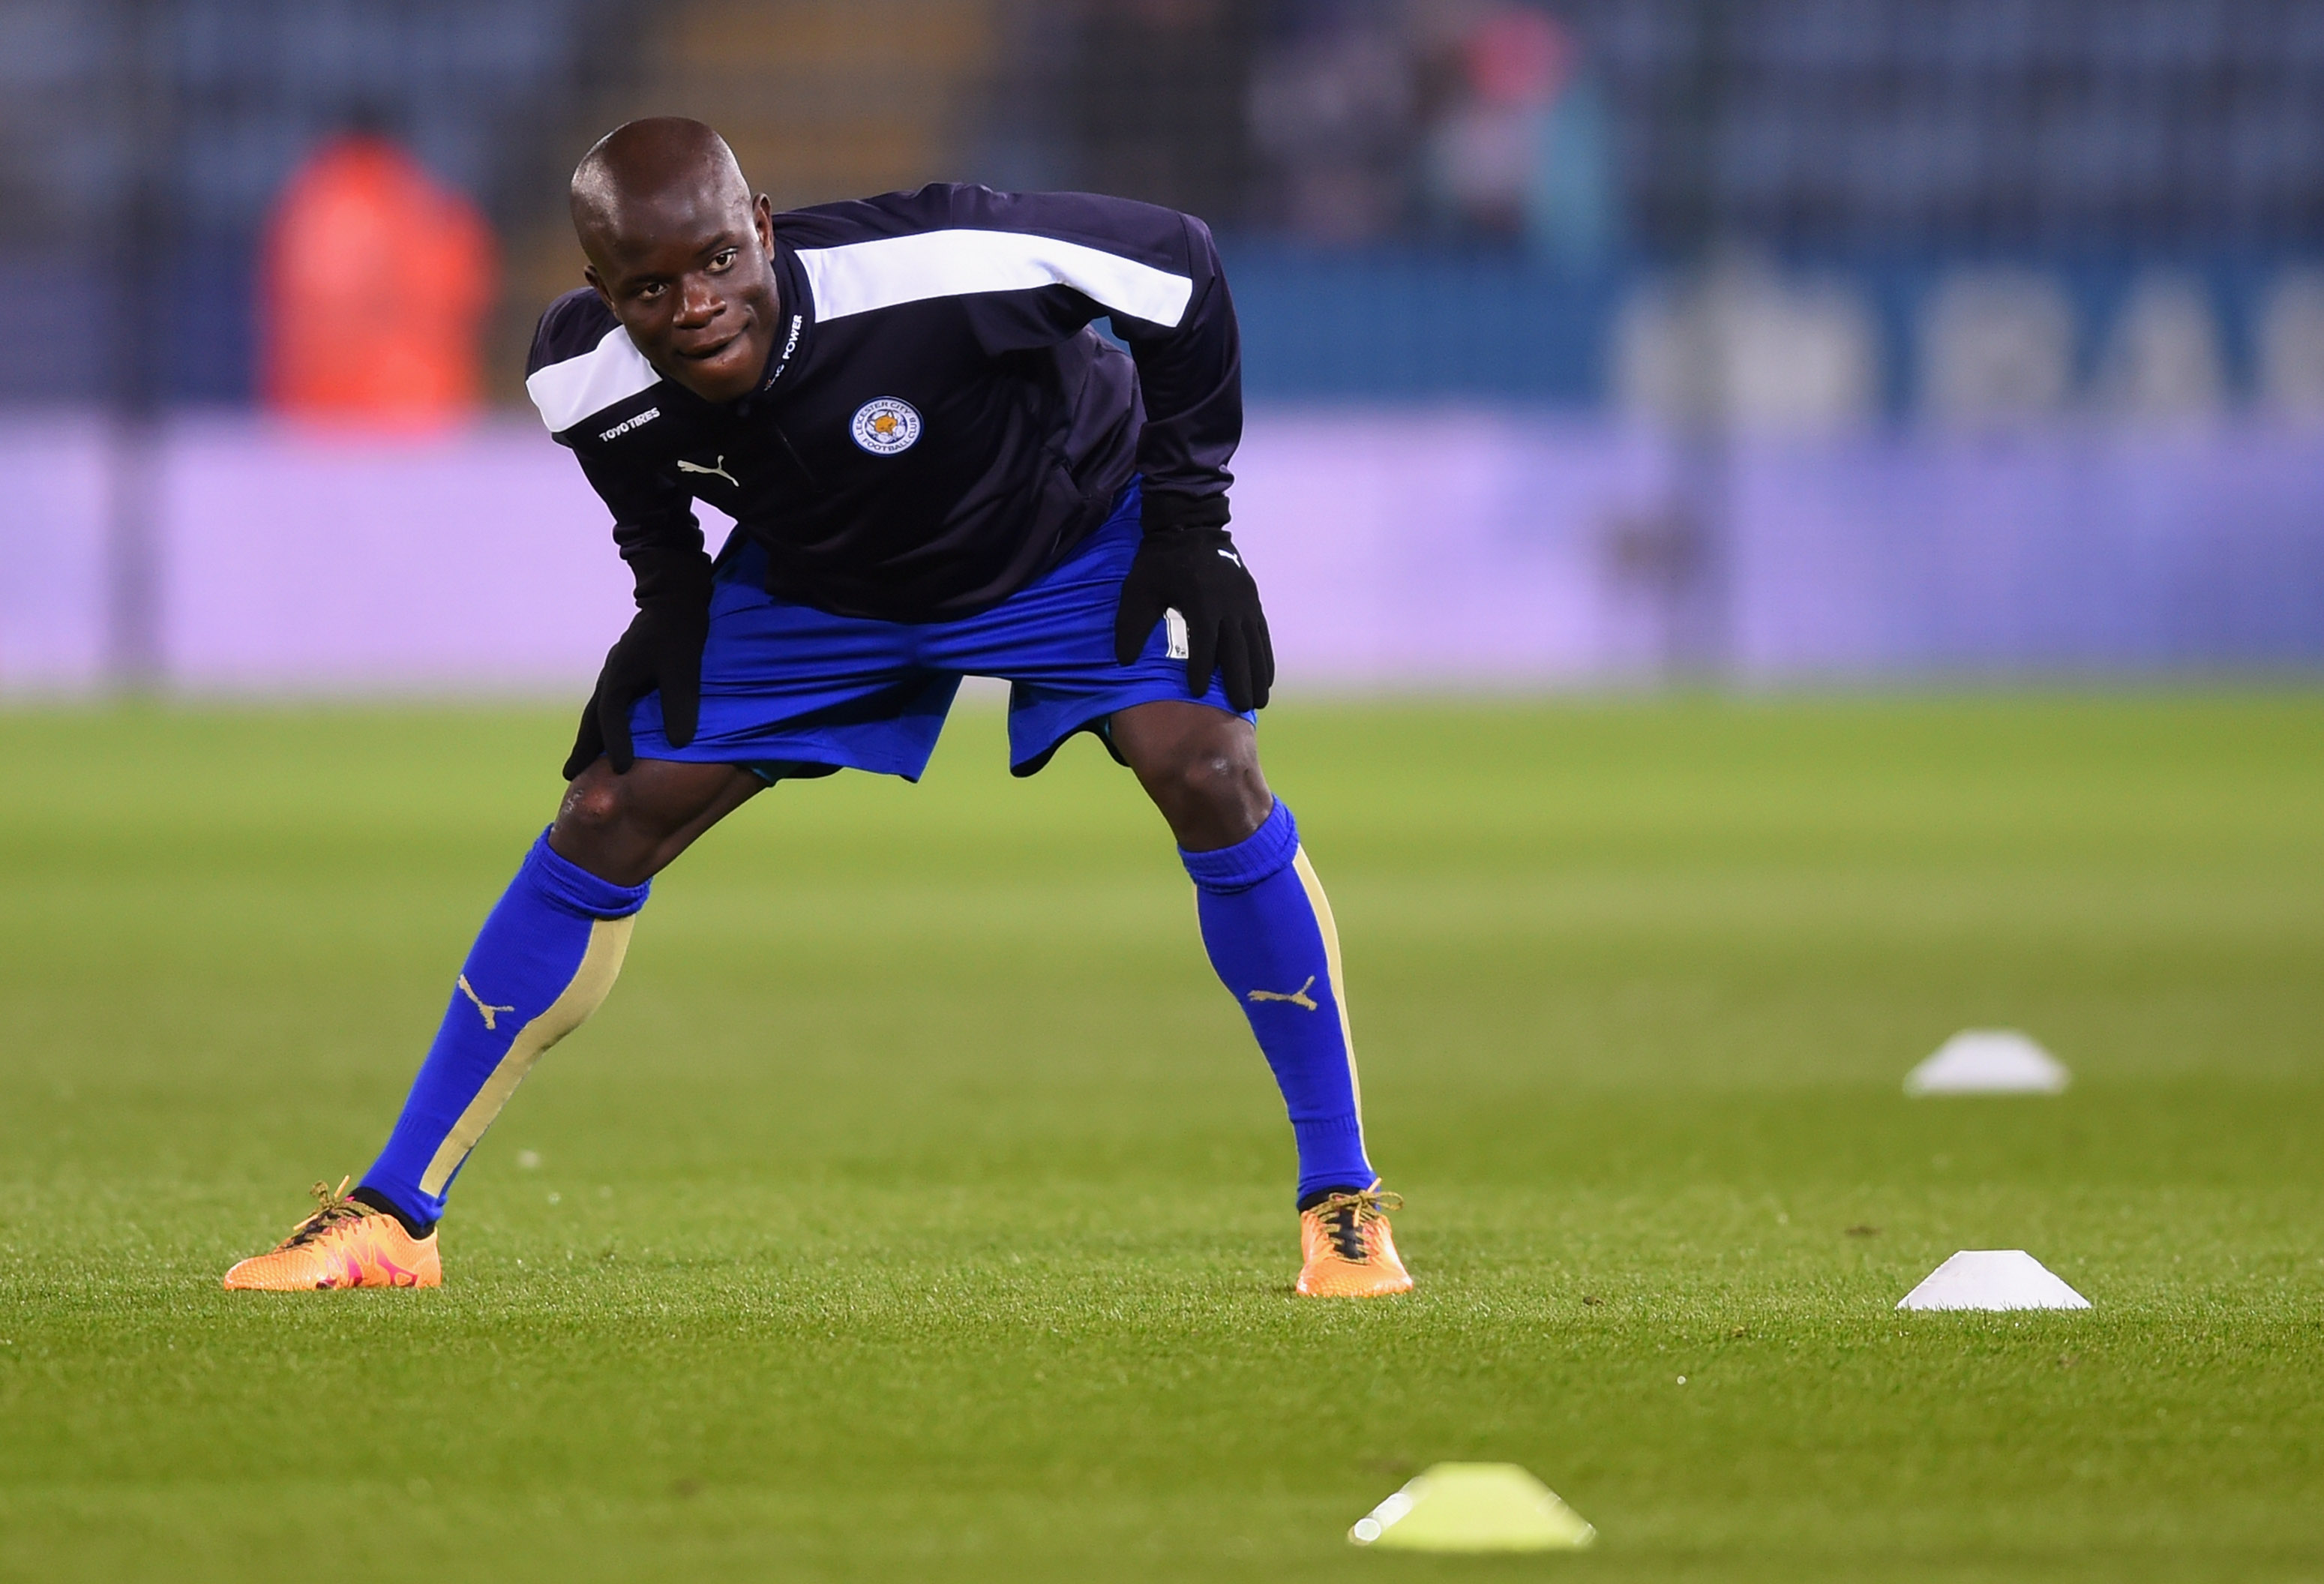 LEICESTER, ENGLAND - MARCH 14:  Ngolo Kante of Leicester City warms up prior to the Barclays Premier League match between Leicester City and Newcastle United at The King Power Stadium on March 14, 2016 in Leicester, England.  (Photo by Michael Regan/Getty Images)